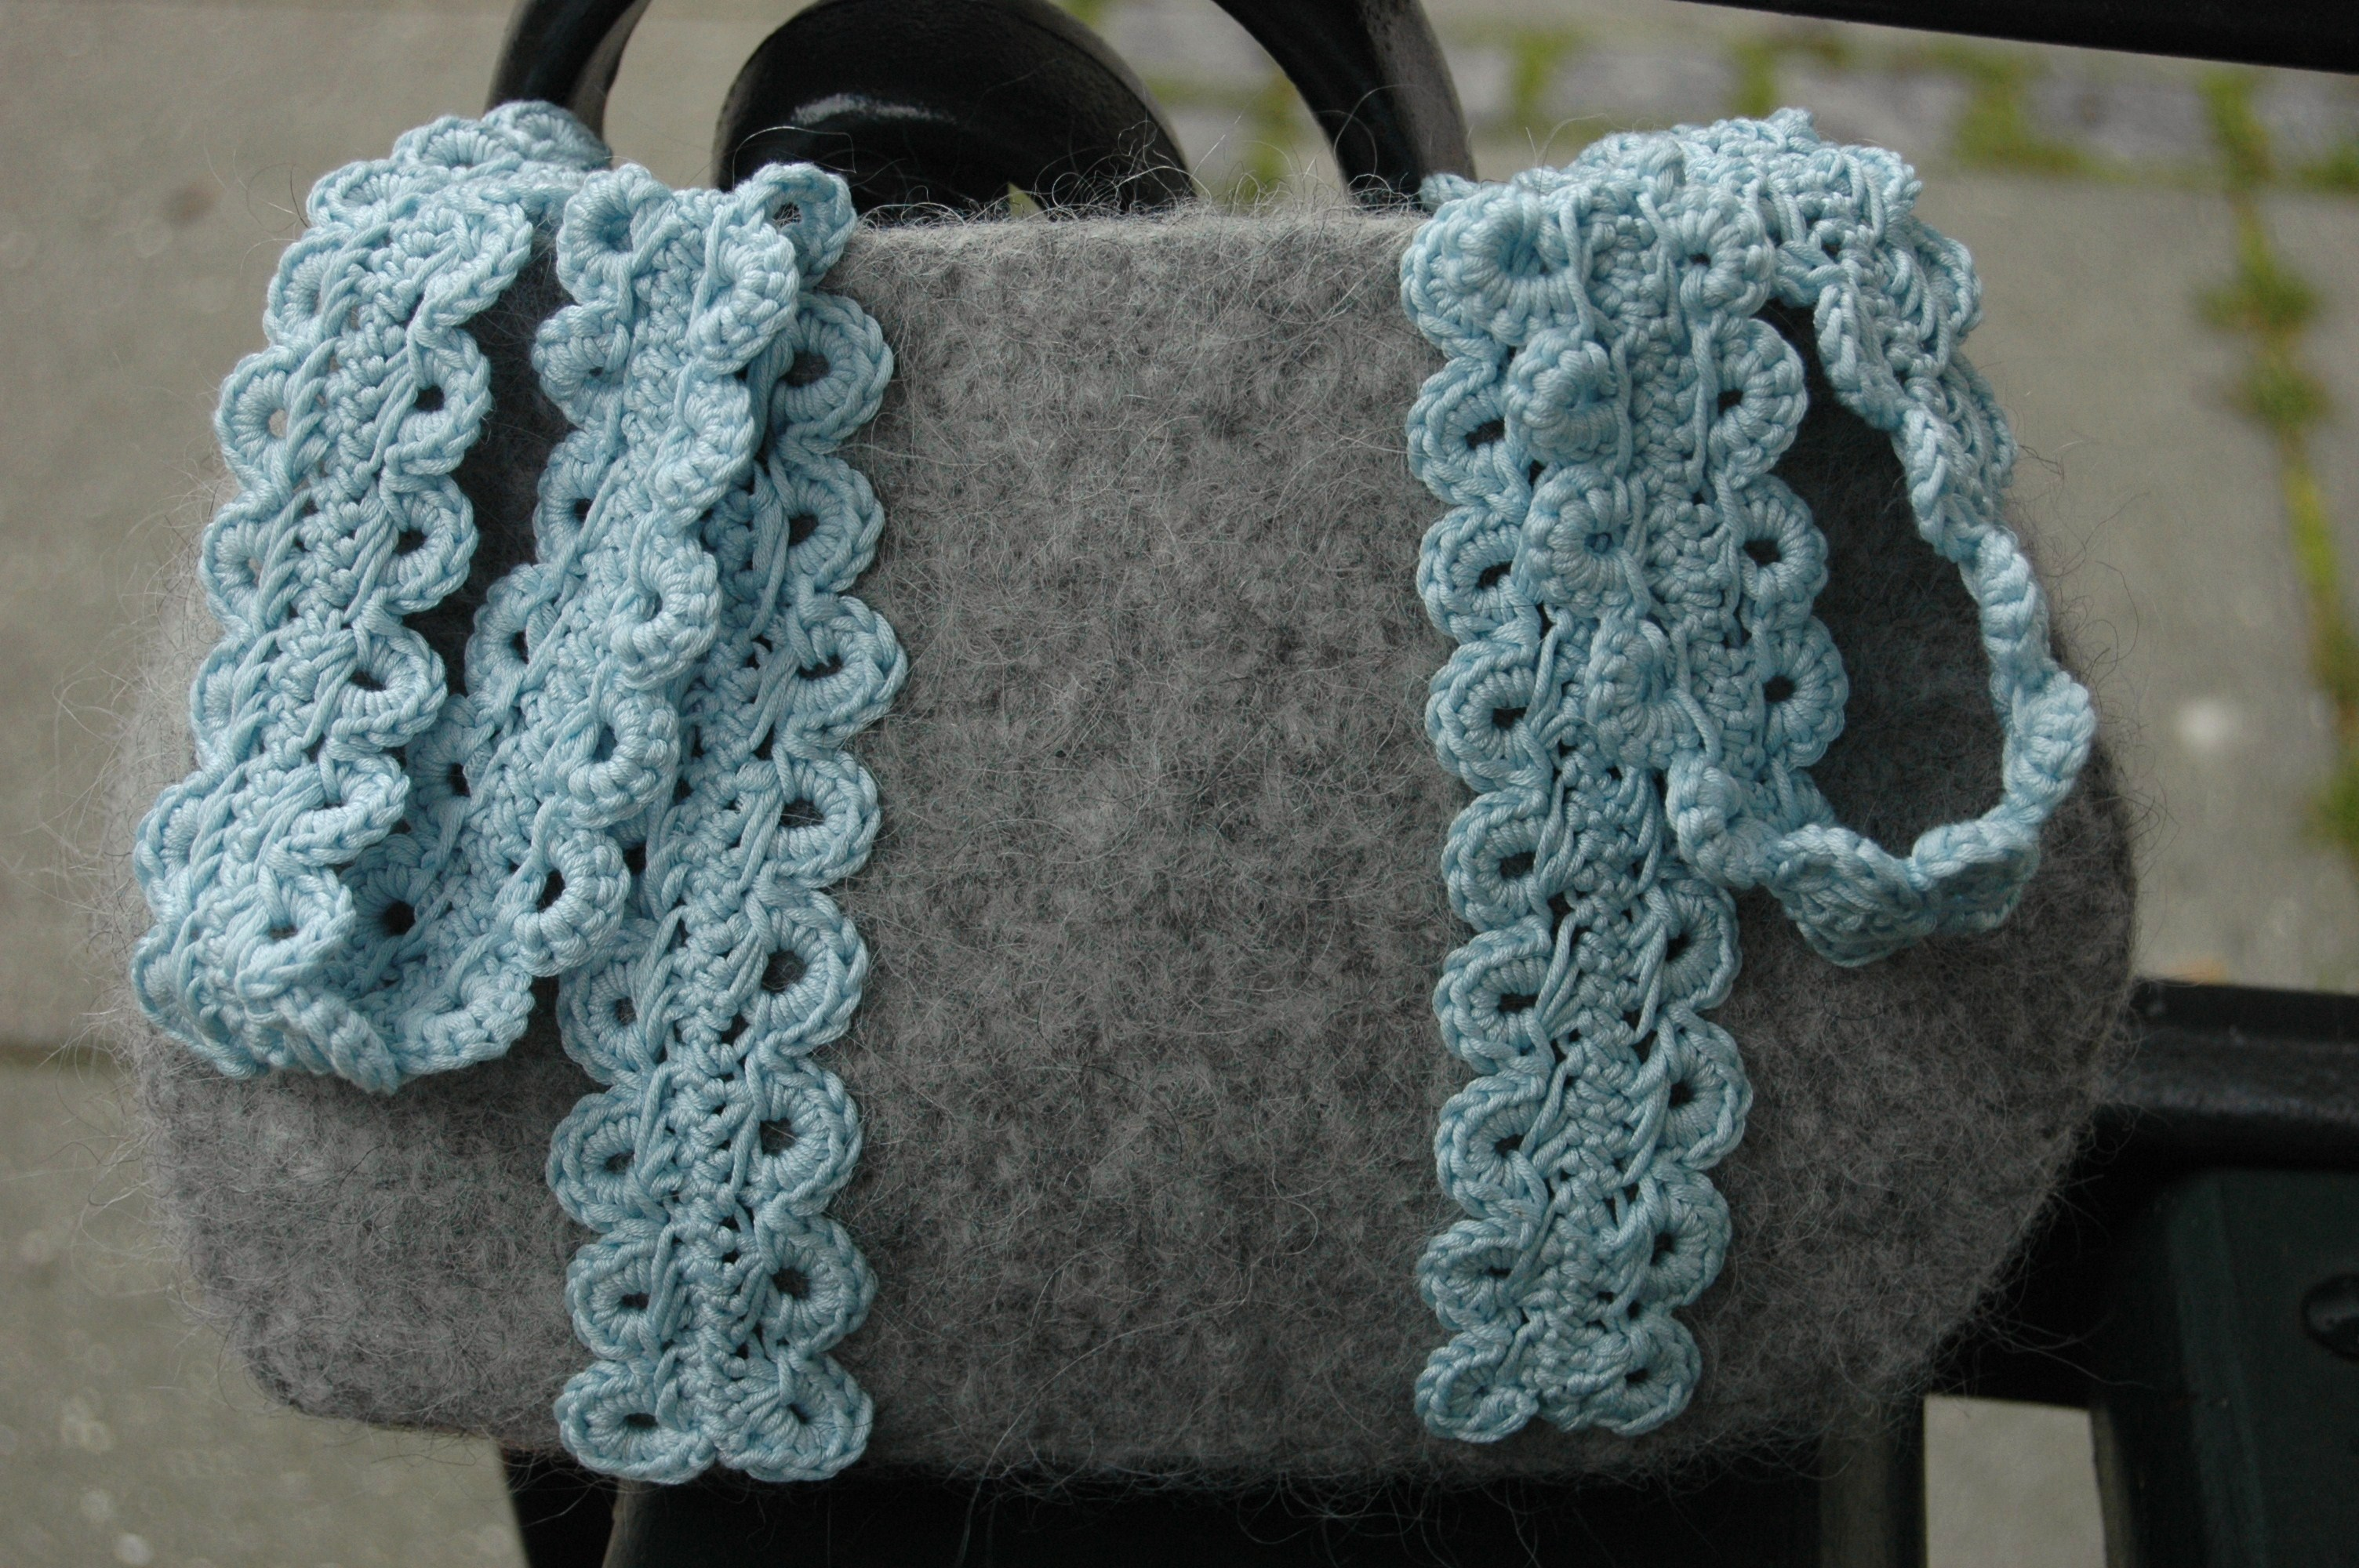 Free Felted Crochet Bag Pattern: - Your Own Purse Making Guide